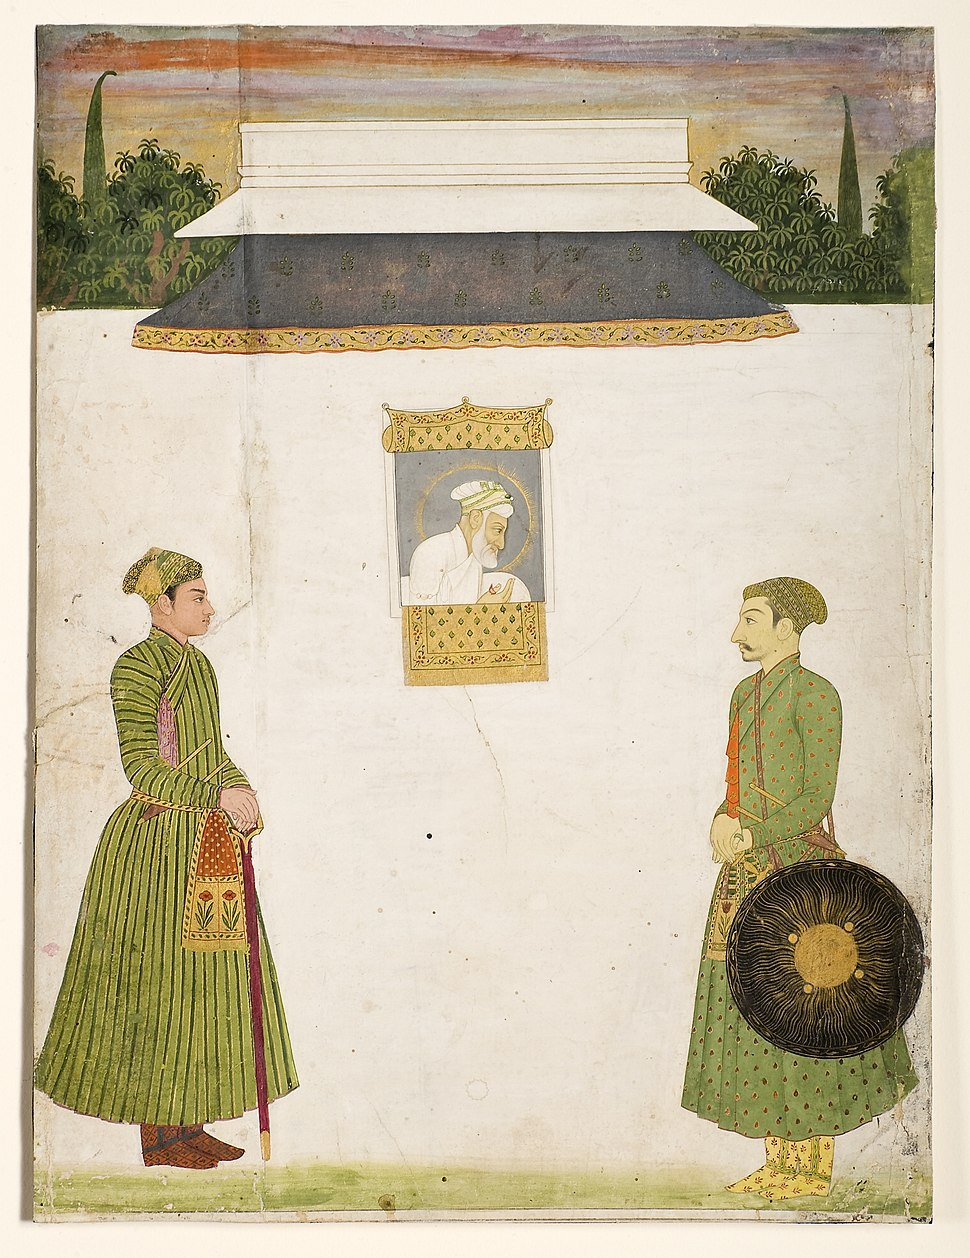 Emperor Aurangzeb at a jharokha window, two noblemen in the foregroundIn 1710 San Diego Museum of Art